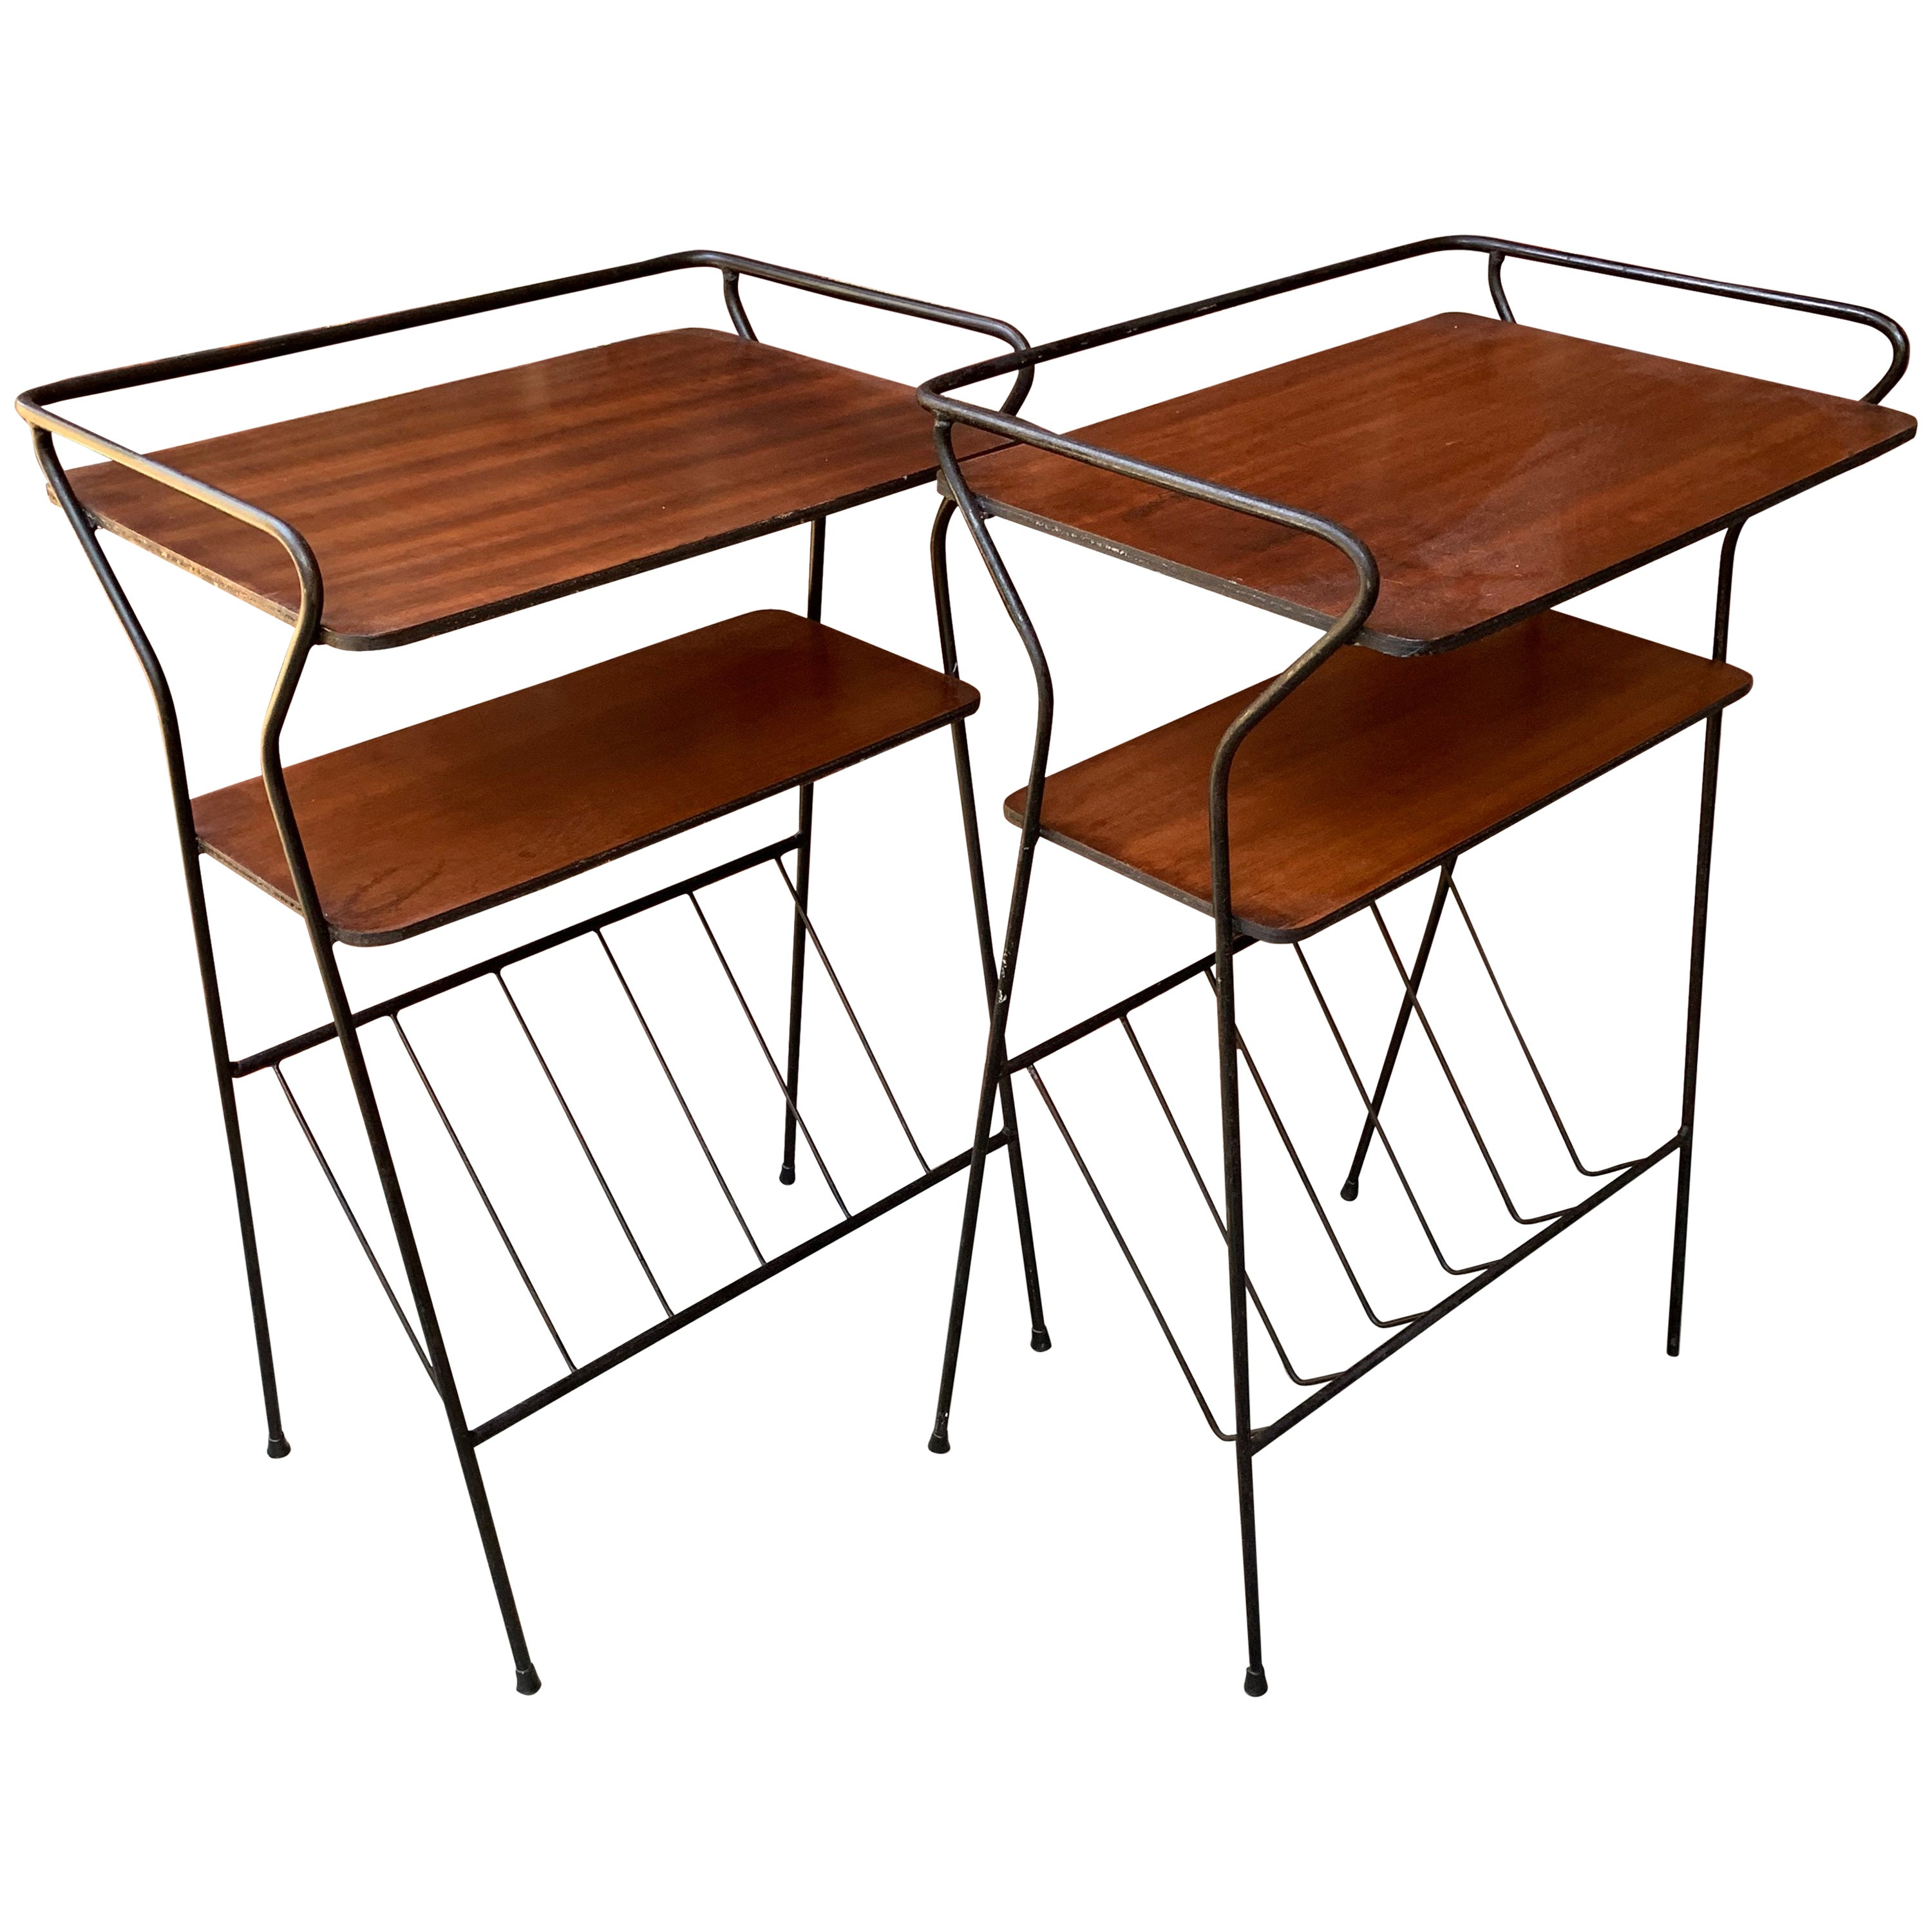 Pair Of End Tables With Magazine Racks On Black Wire Legs For Sale At  1stdibs